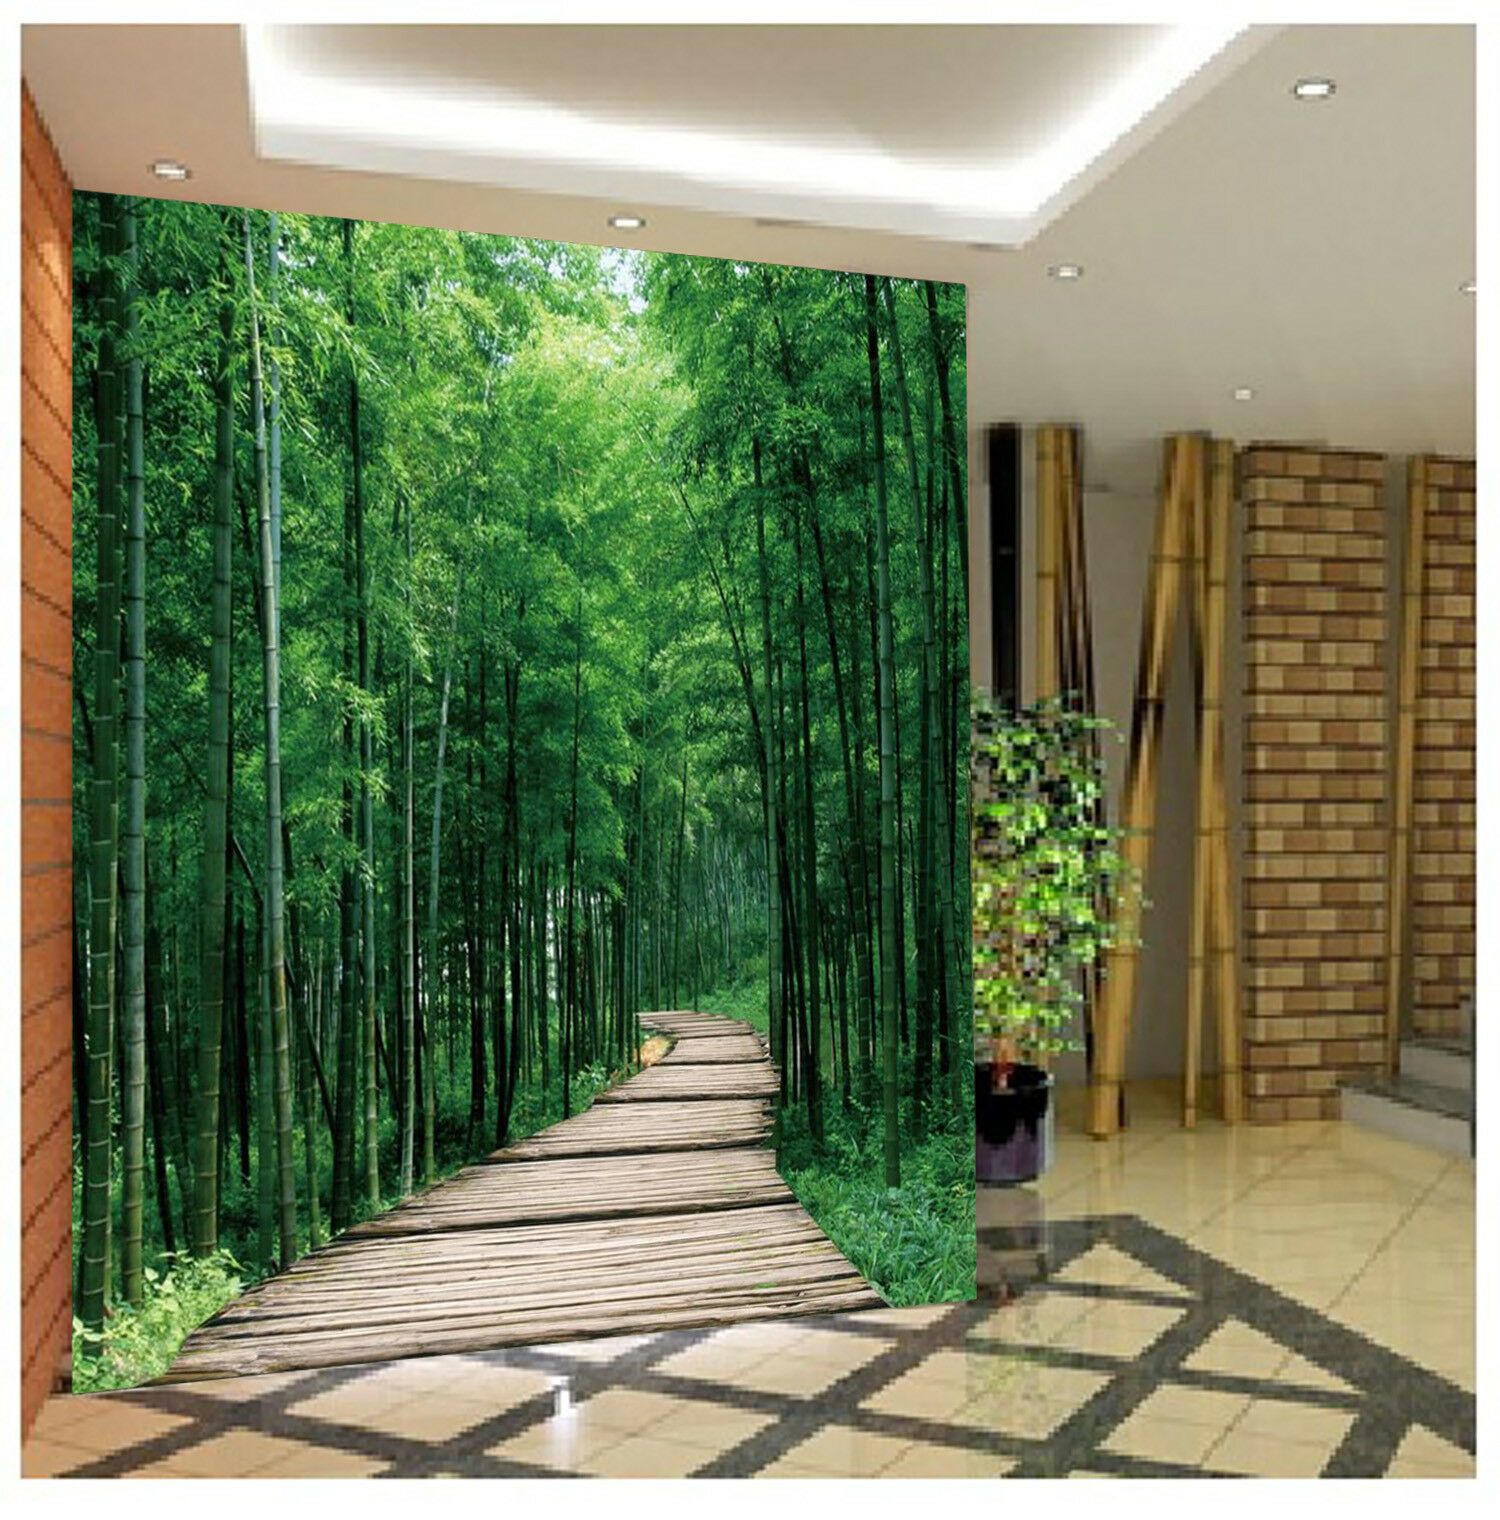 3D Bamboo Road 57 Wallpaper Murals Wall Print Wallpaper Mural AJ WALL AU Kyra